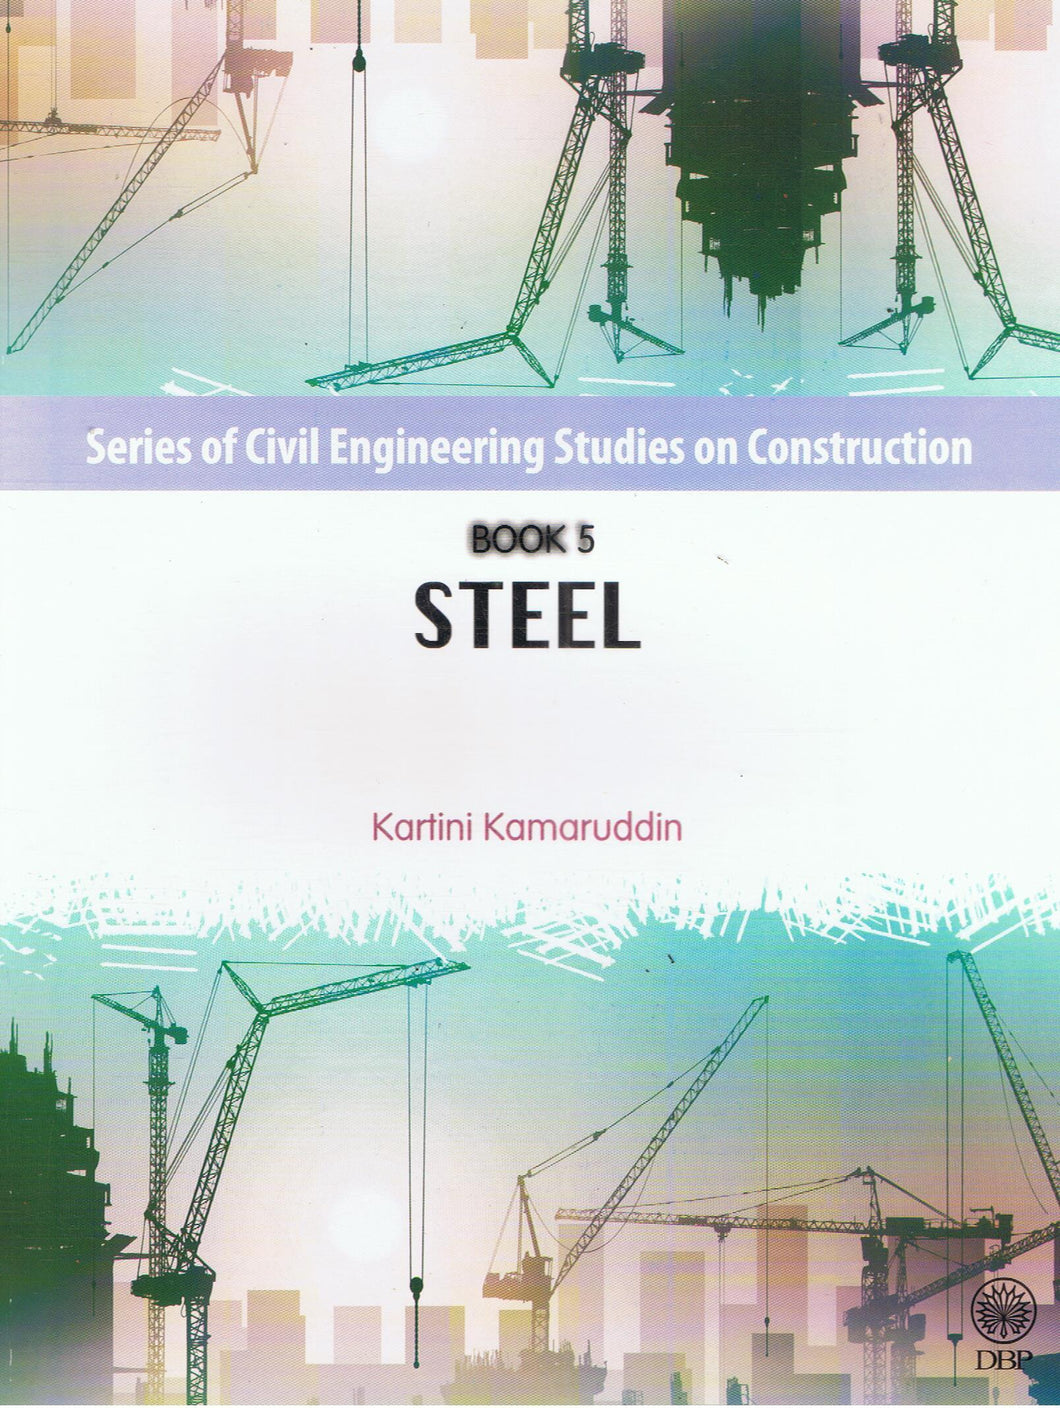 Dewan Bahasa dan Pustaka-Series of Civil Engineering Studies On Construction Book 5: Steel-9789834614232-BukuDBP.com